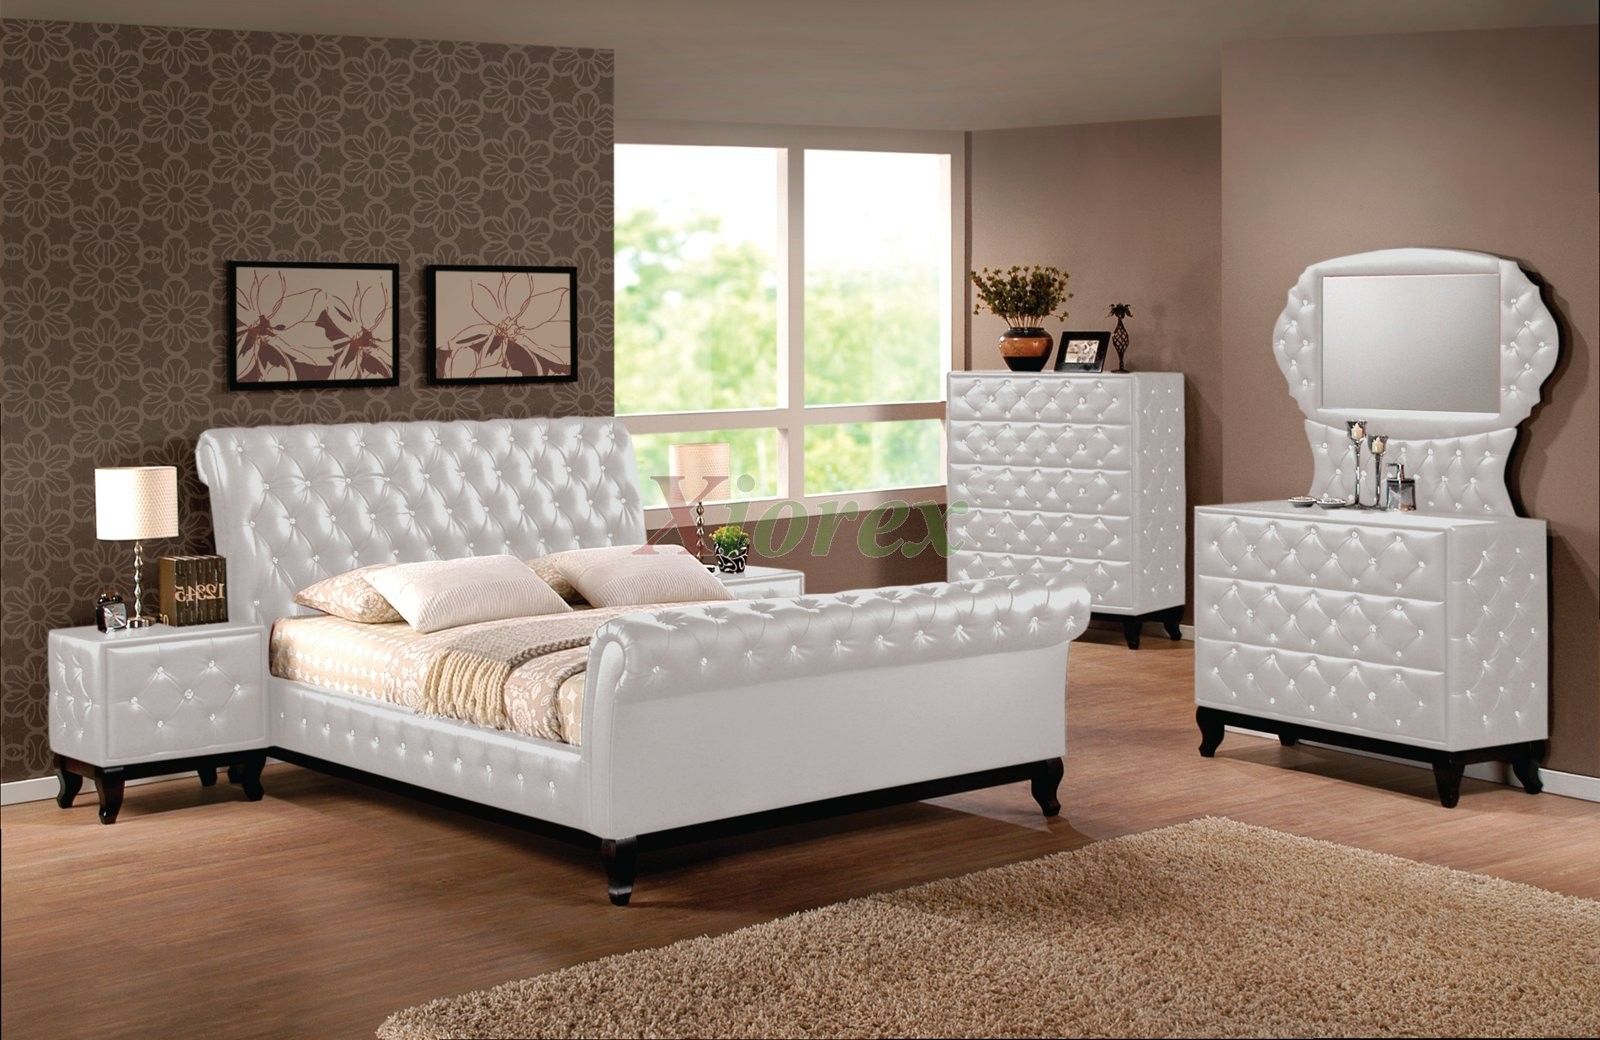 Upholstered sleigh platform bedroom furniture set 151 xiorex for Bedroom furniture set